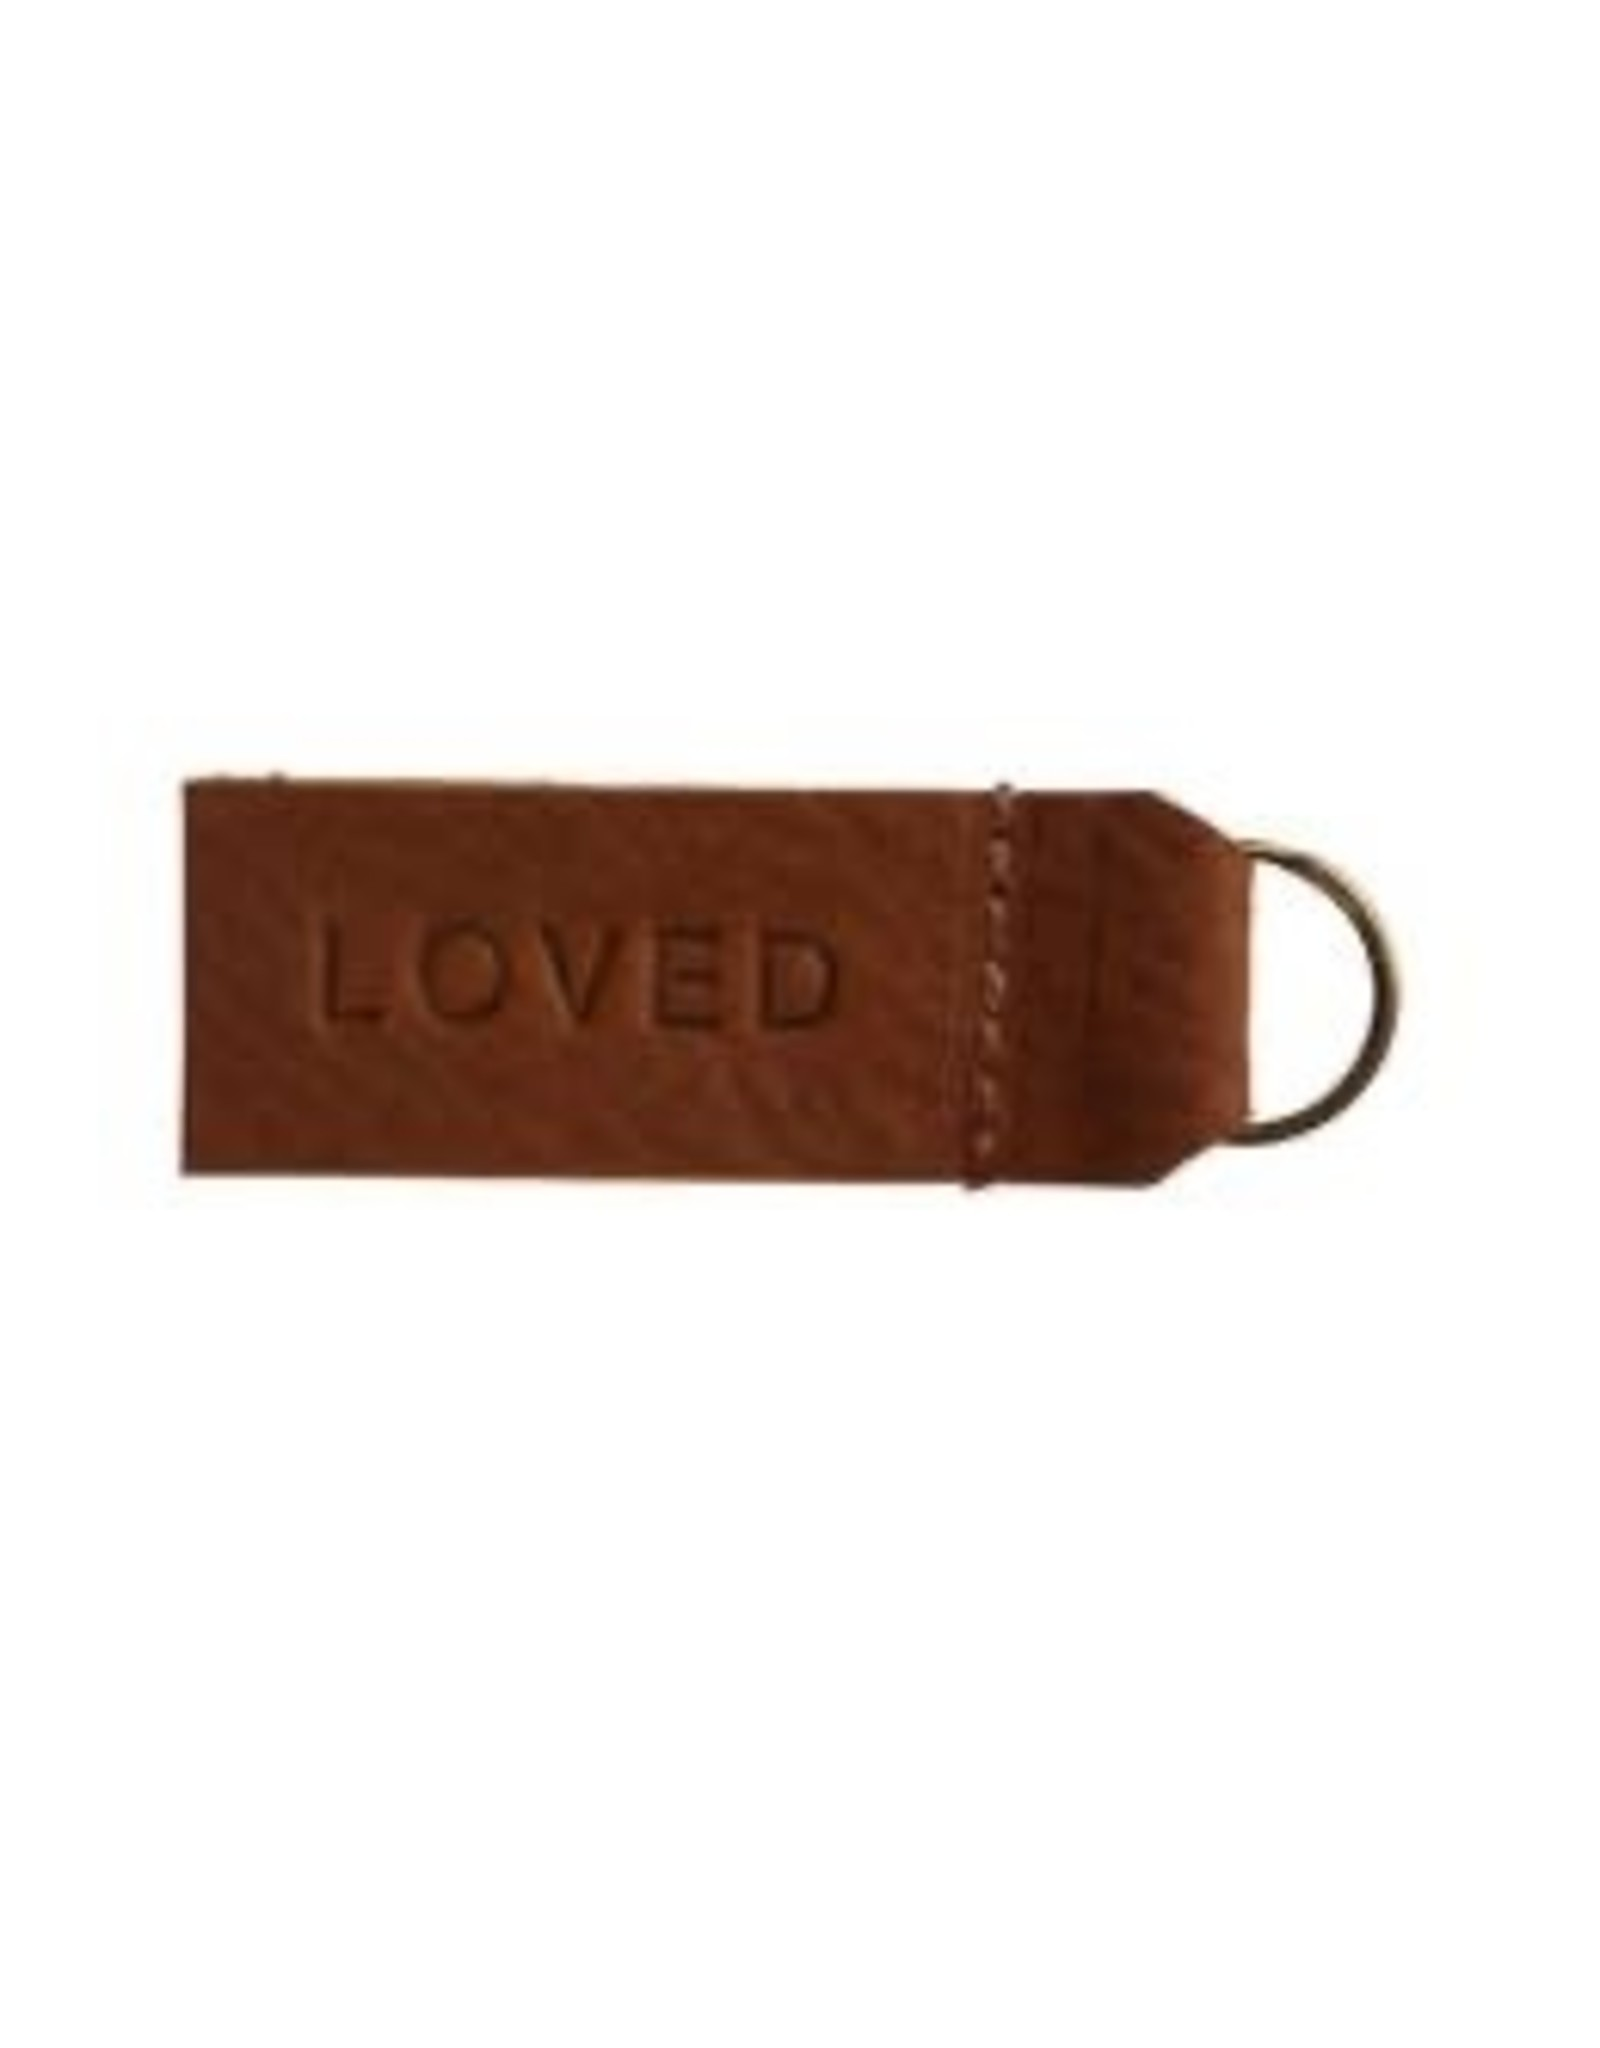 Repurposed On Purpose Loved Leather Keychain